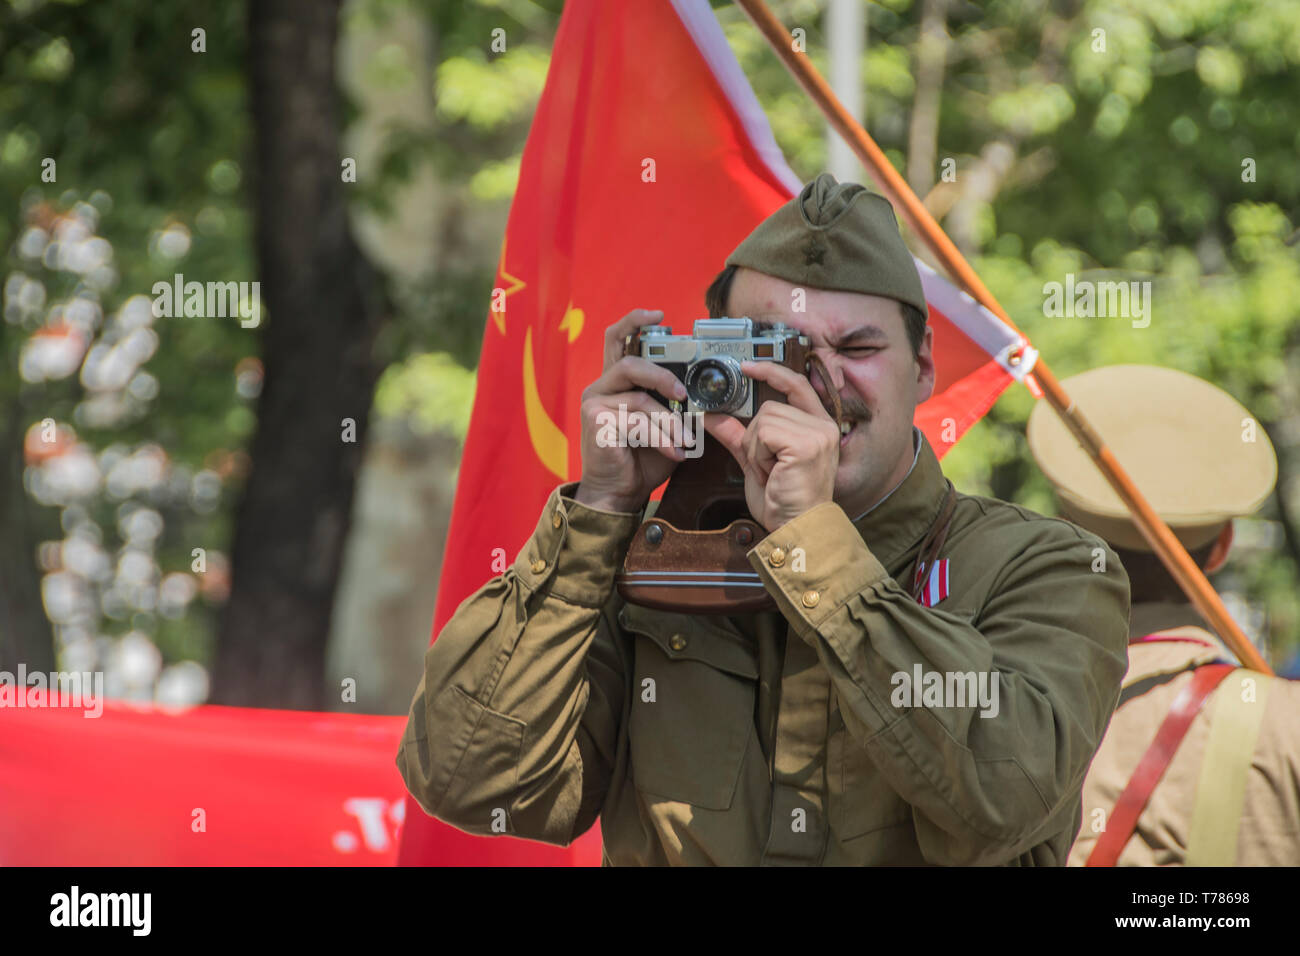 A man taking a picture with a Russian zenit camera in the celebration of the soviet union in its victory in world war II in Madrid, Spain. celebration - Stock Image